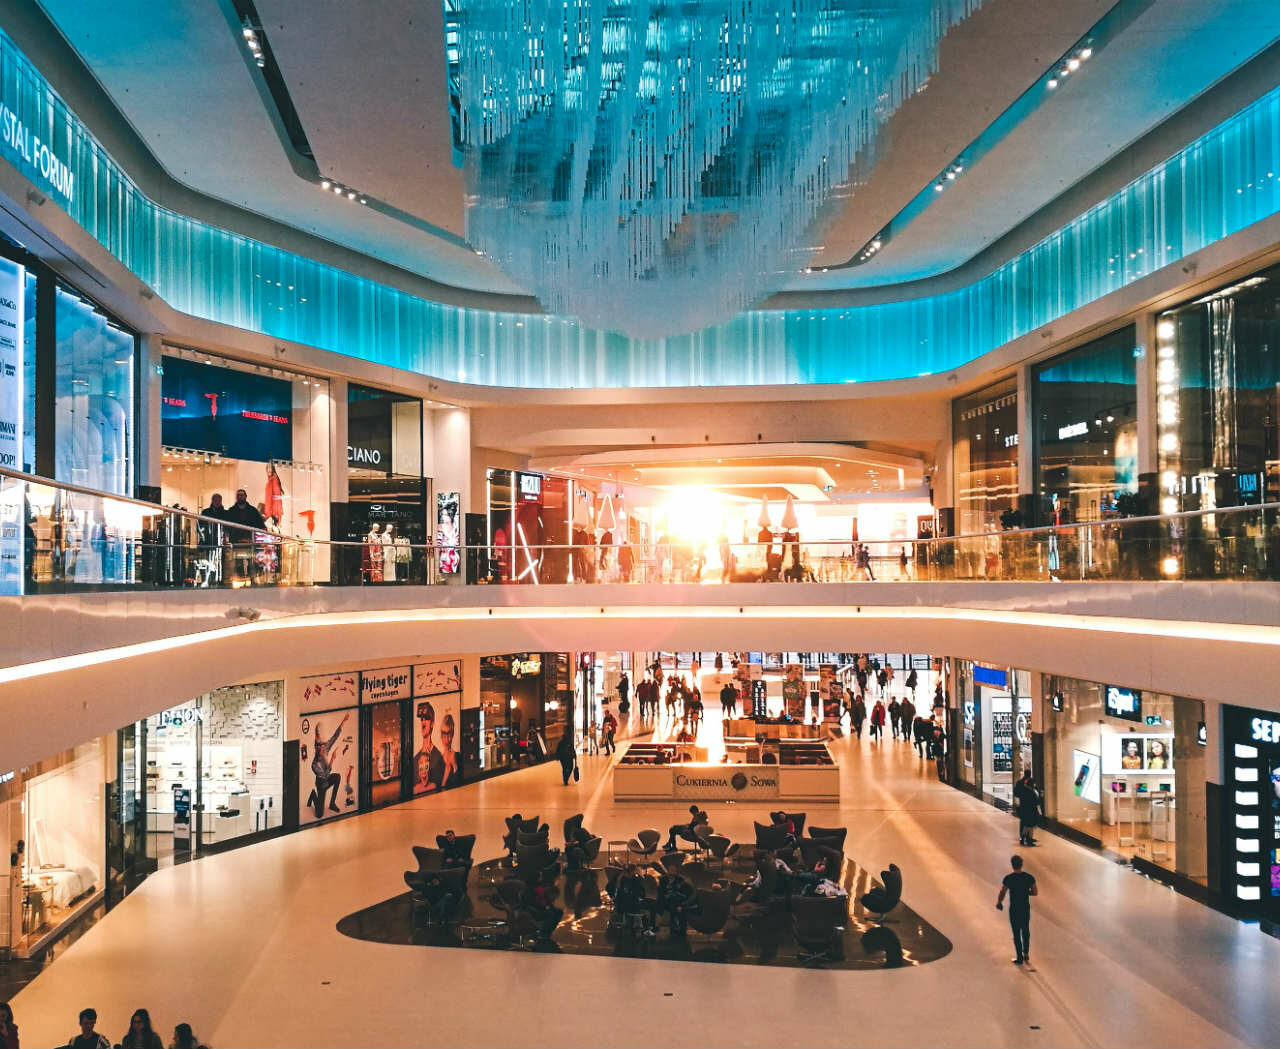 Improving accessibility in shopping & retail centres: the ethical & commercial case